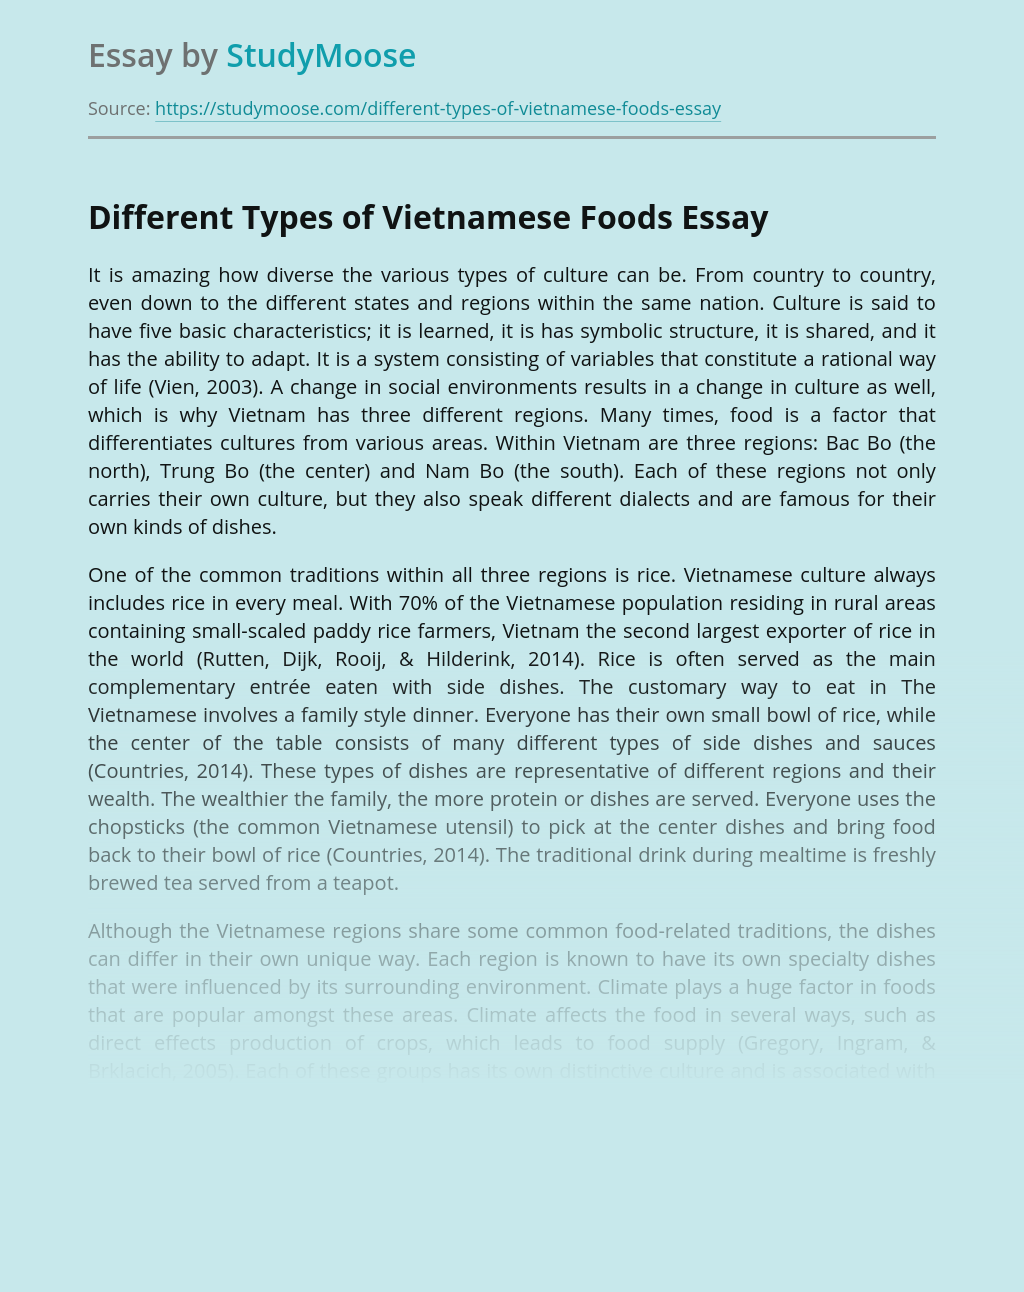 Different Types of Vietnamese Foods